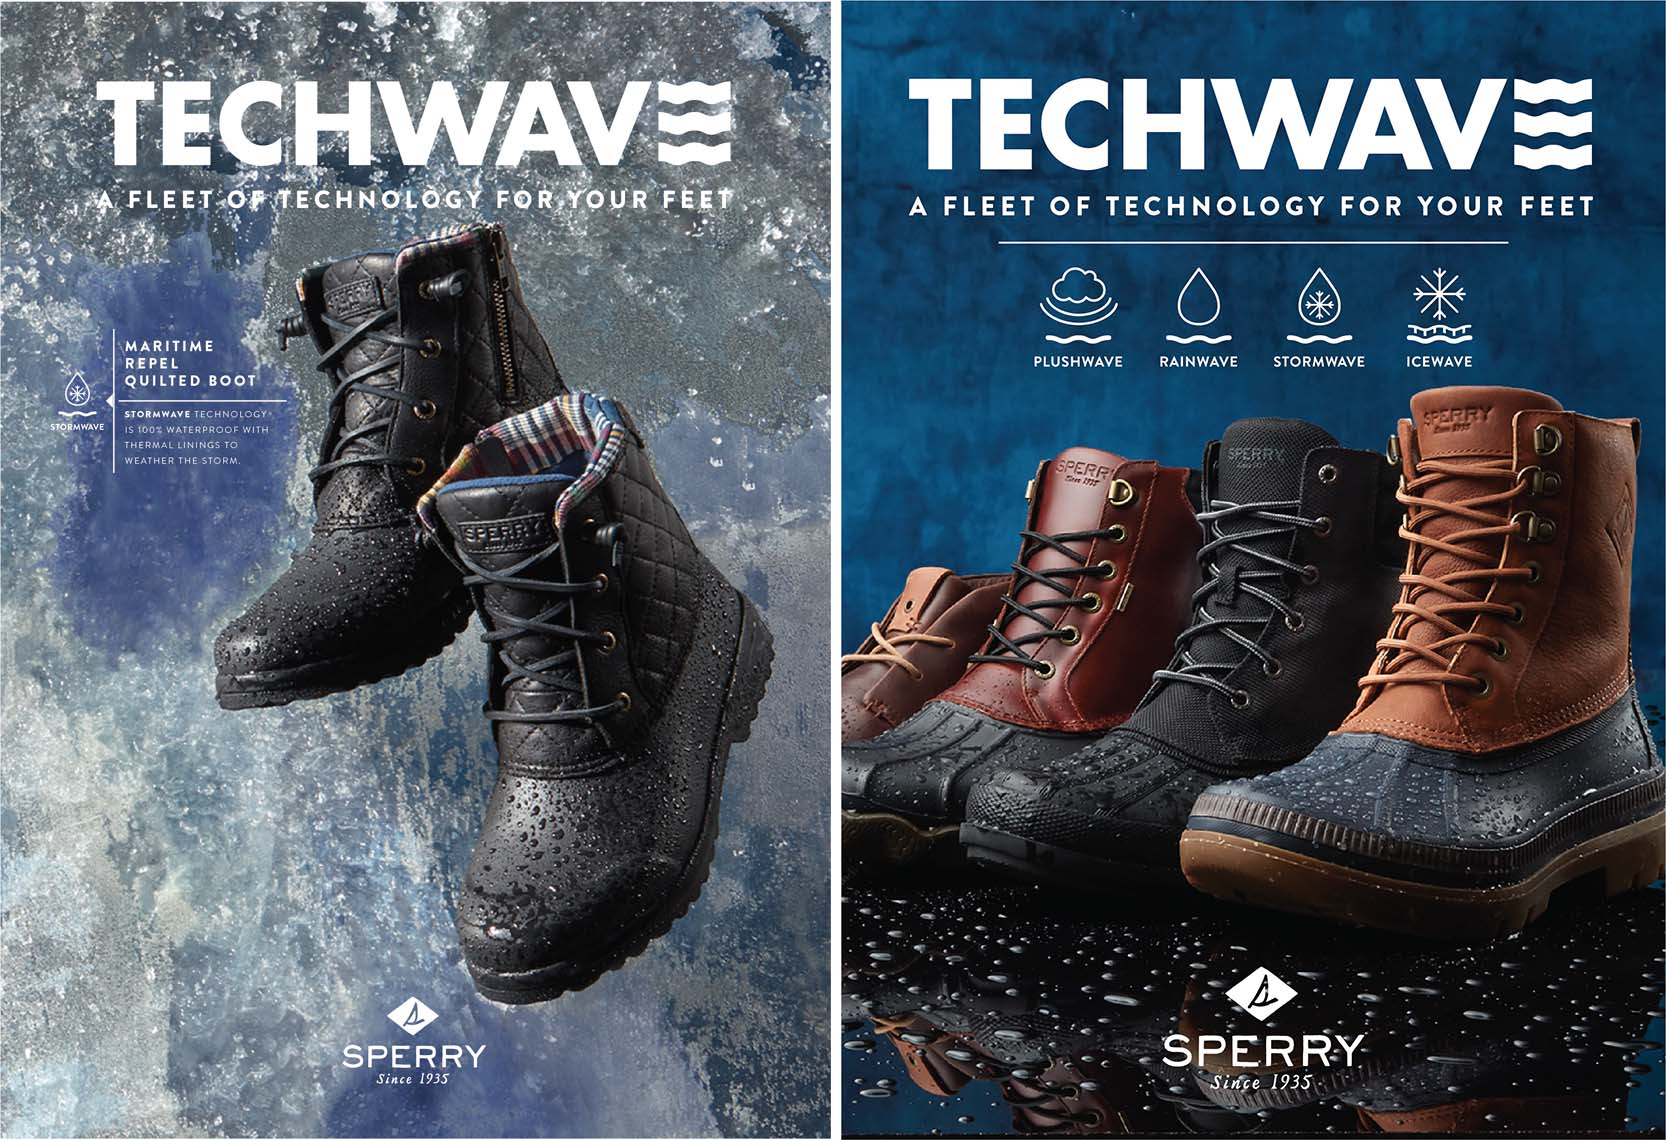 BCO_SperryTech2_OffFoot_Posters_CC_2019_1010